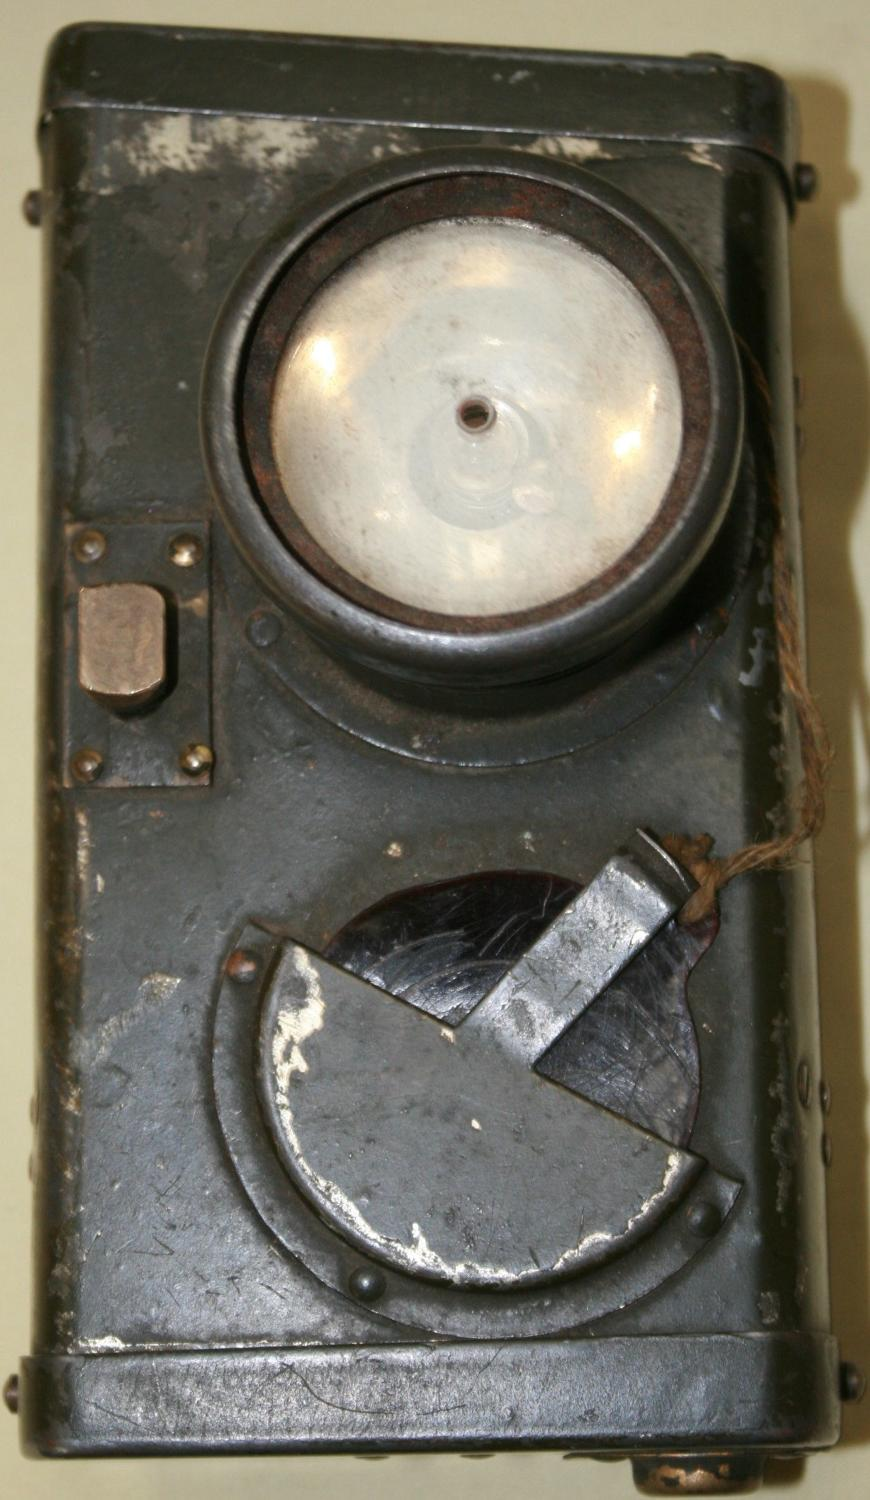 A WWI TRENCH SIGNALLING LAMP WITH A BAYONET FITTING